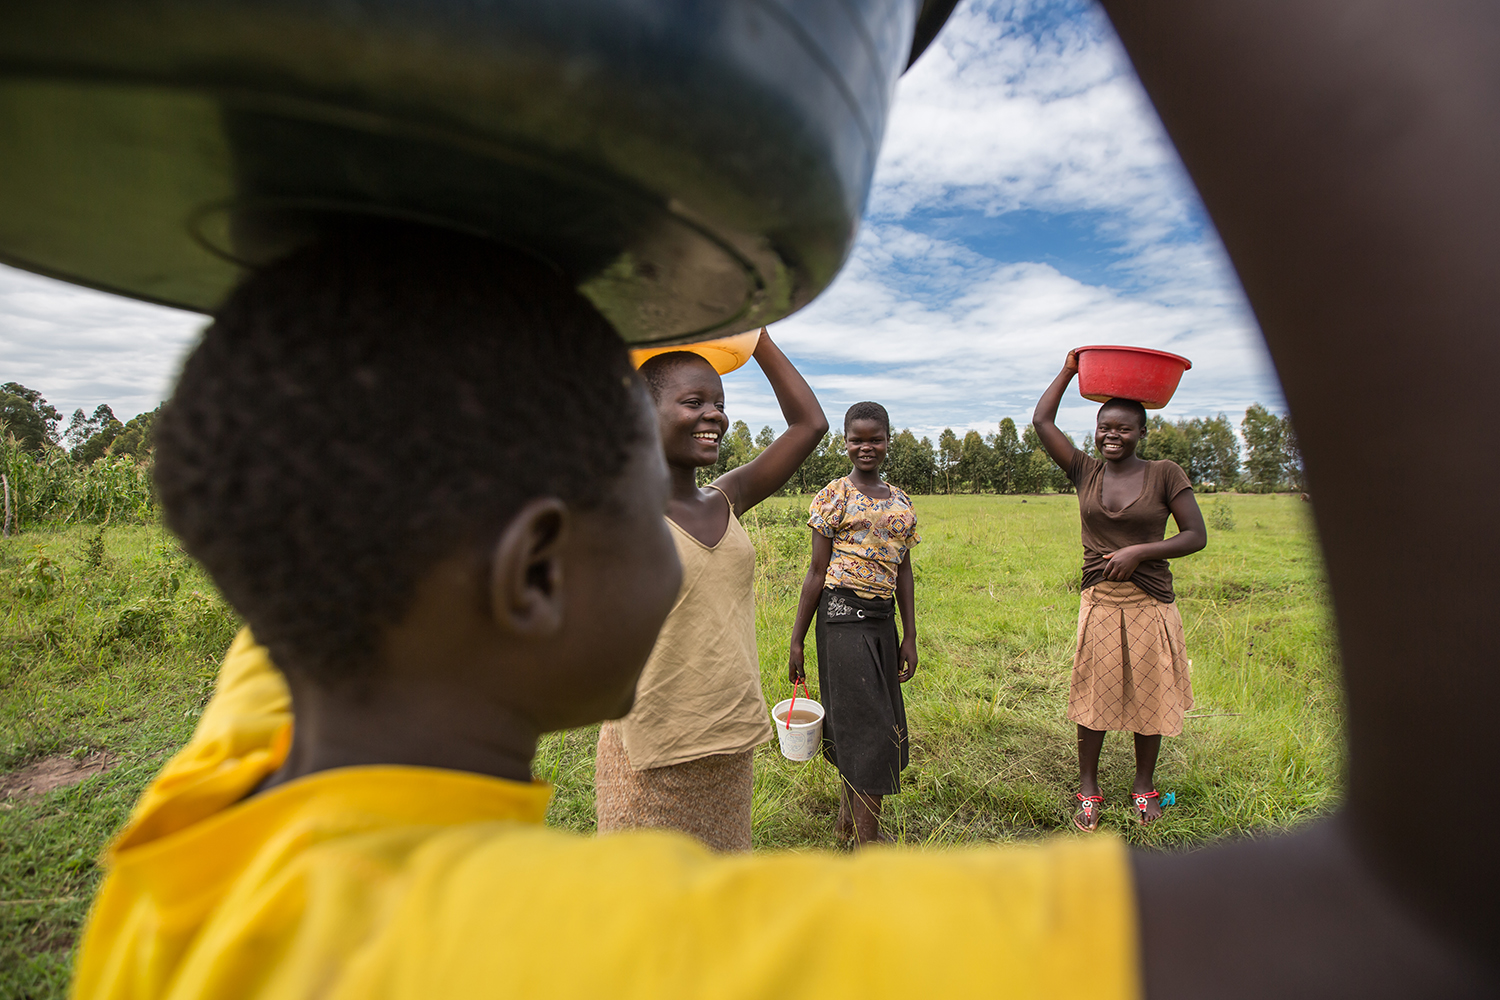 Annoline and her sisters Purity (yellow top) and Mollie go and fetch water near their home in Nyarongi, Homa Bay Kenya 14 November Schermbrucker/ACTION AID. (Annoline was encouraged by the Women's Network to return to school after giving birth when she was 14 yrs old. Tragically, she lost the baby at birth)